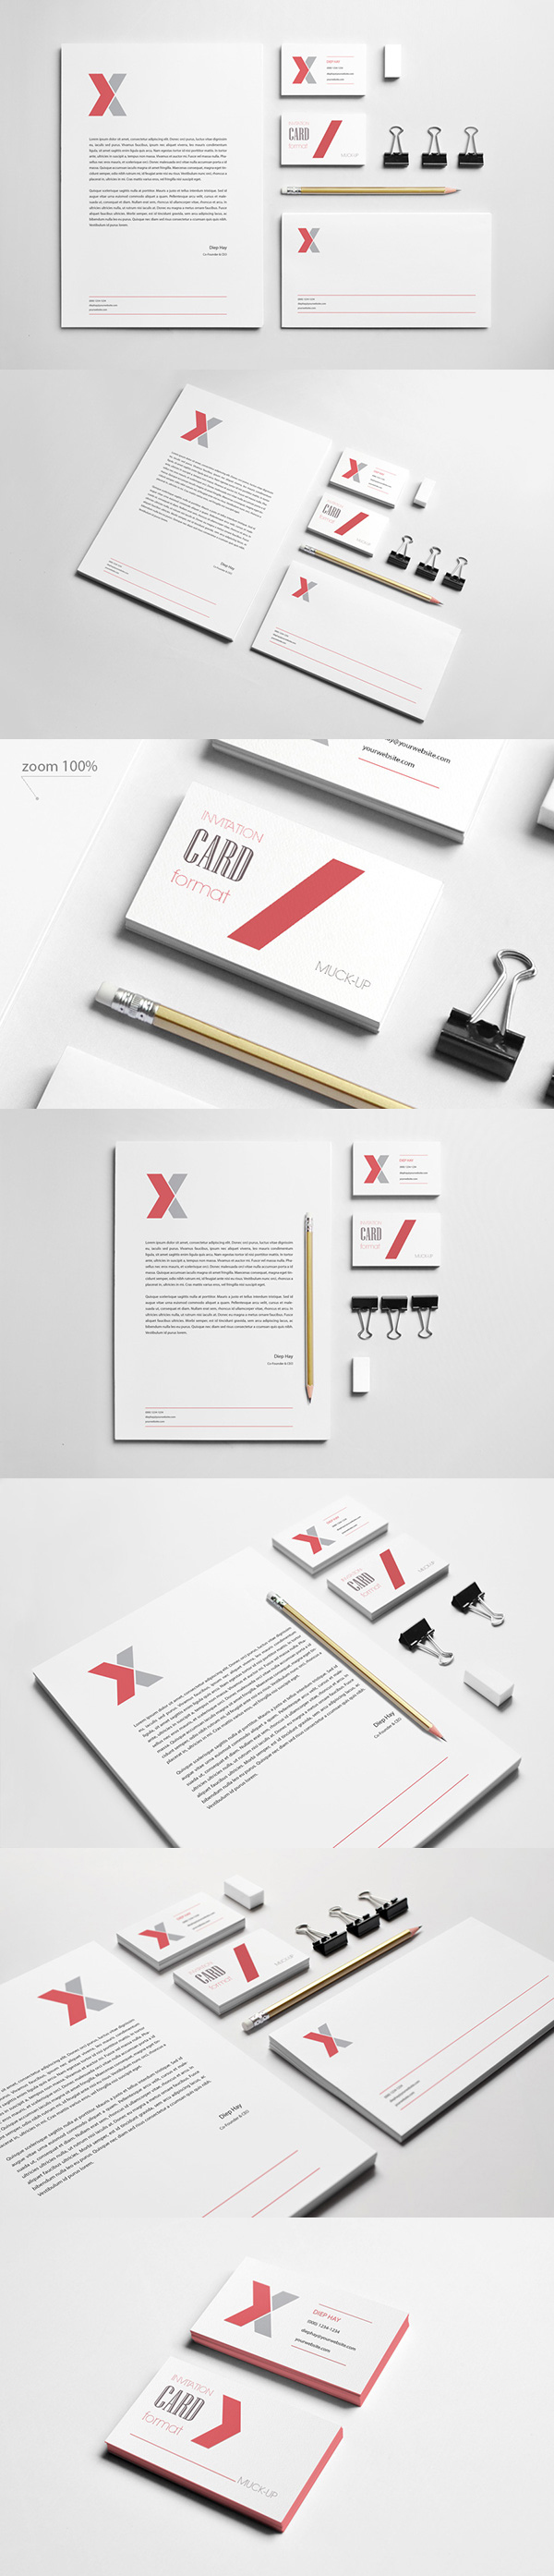 10 Branding : Stationery Mock-Up